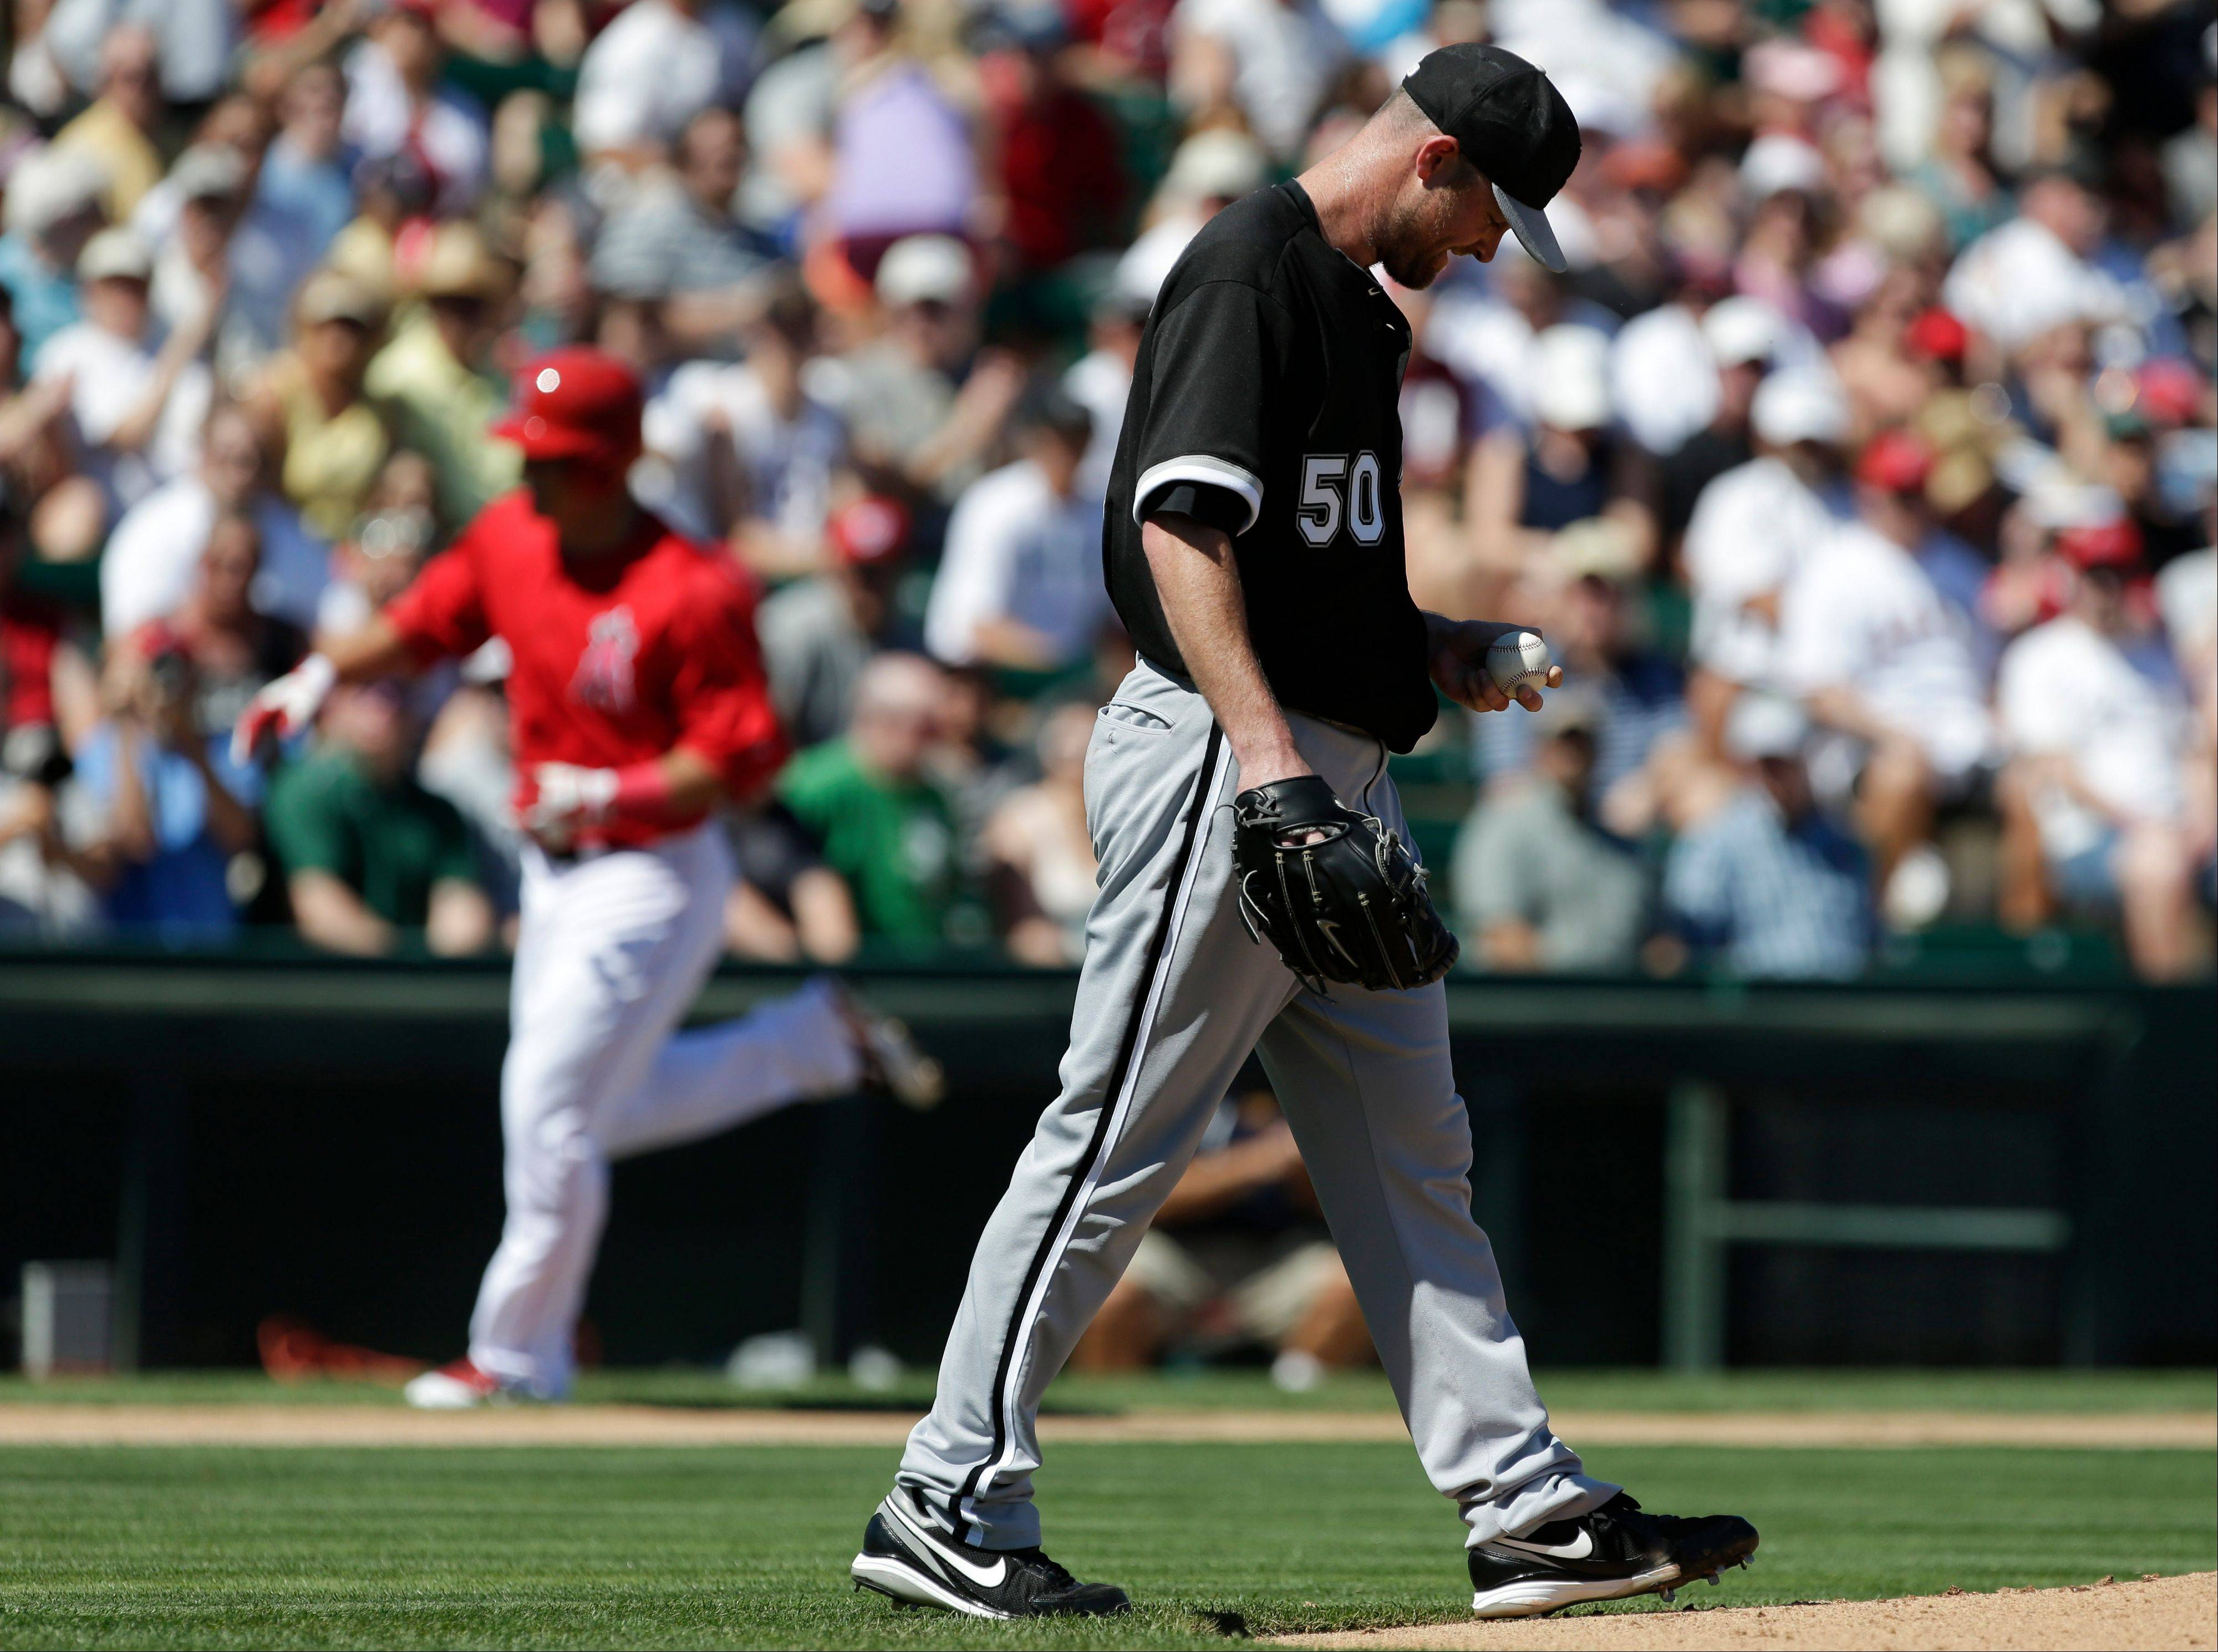 Los Angeles Angels' Mike Trout, back left, round the base after a home run as Chicago White Sox starting pitcher John Danks looks at the ball during the first inning of a spring training baseball game in Tempe, Ariz., Thursday, March 14, 2013. (AP Photo/Chris Carlson)